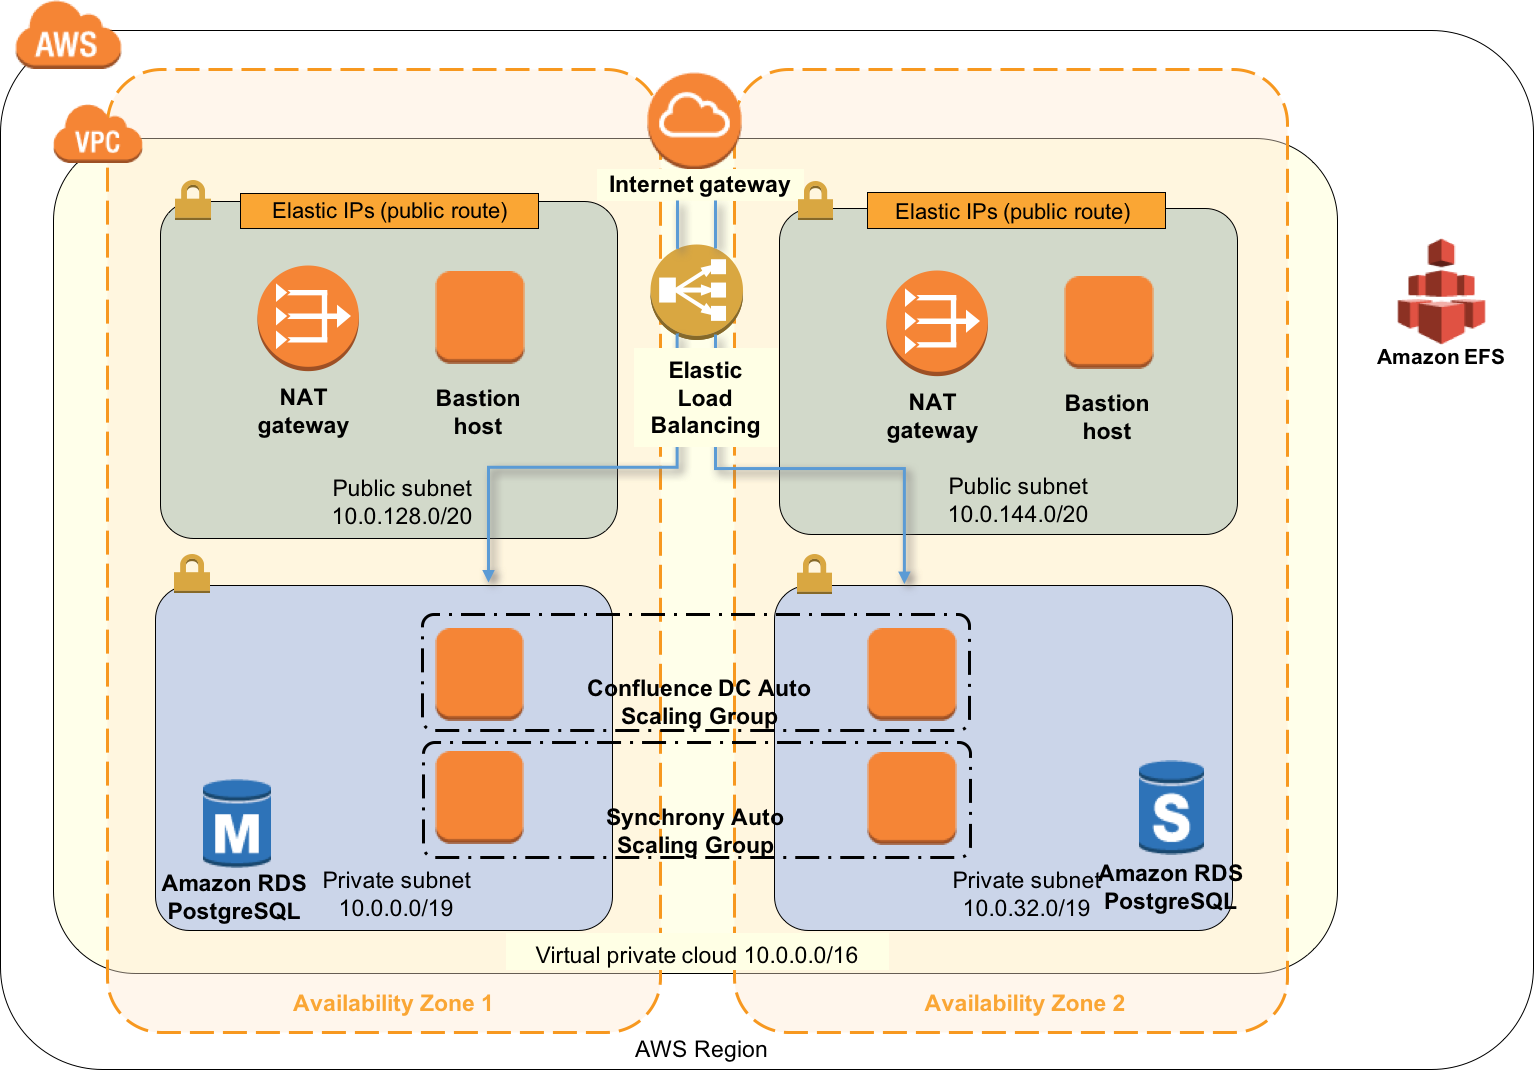 Running Confluence Data Center In Aws Atlassian Documentation Template Stack Process Diagram With 5 Stages Powerpoint Templates Deploying Using The Quick Start